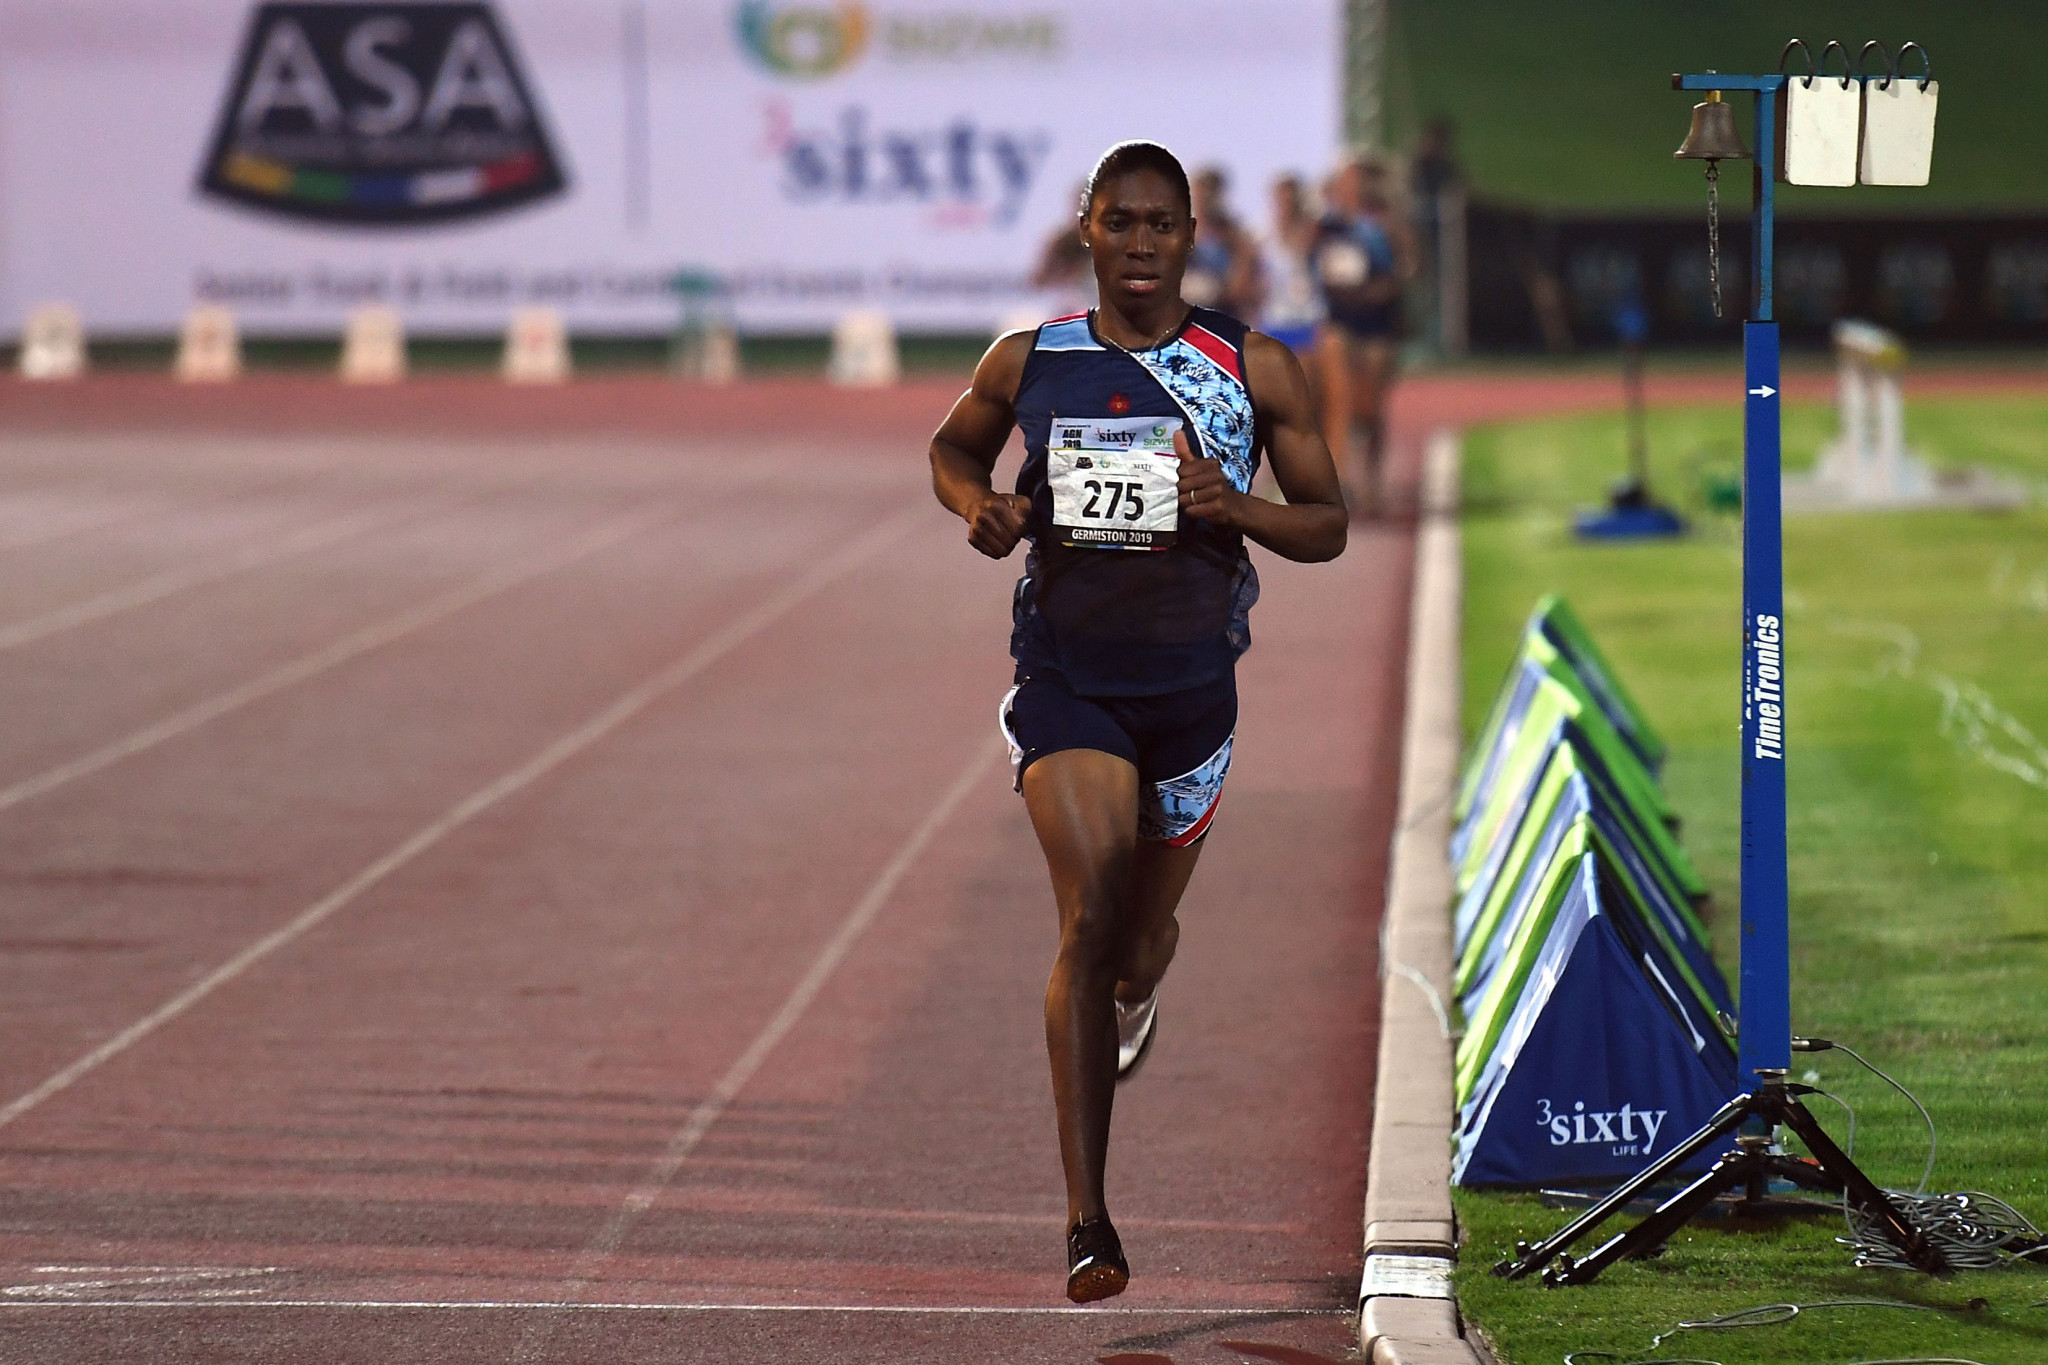 The verdict in the landmark case involving Caster Semenya will be published on Wednesday ©Getty Images